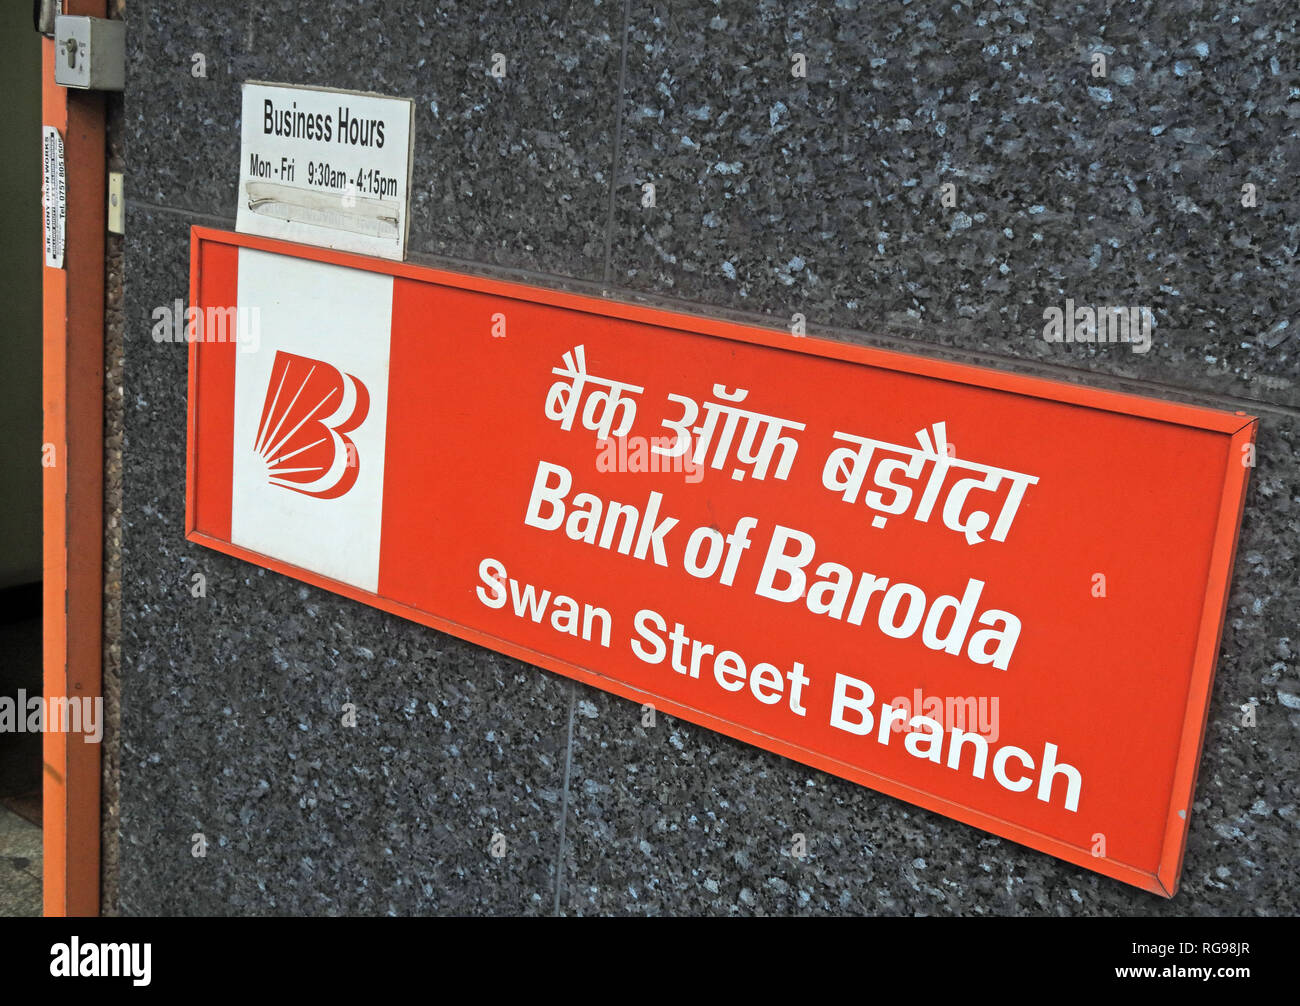 red sign, Bank of Baroda, Swan Street Manchester Branch BoB, England, UK - Stock Image